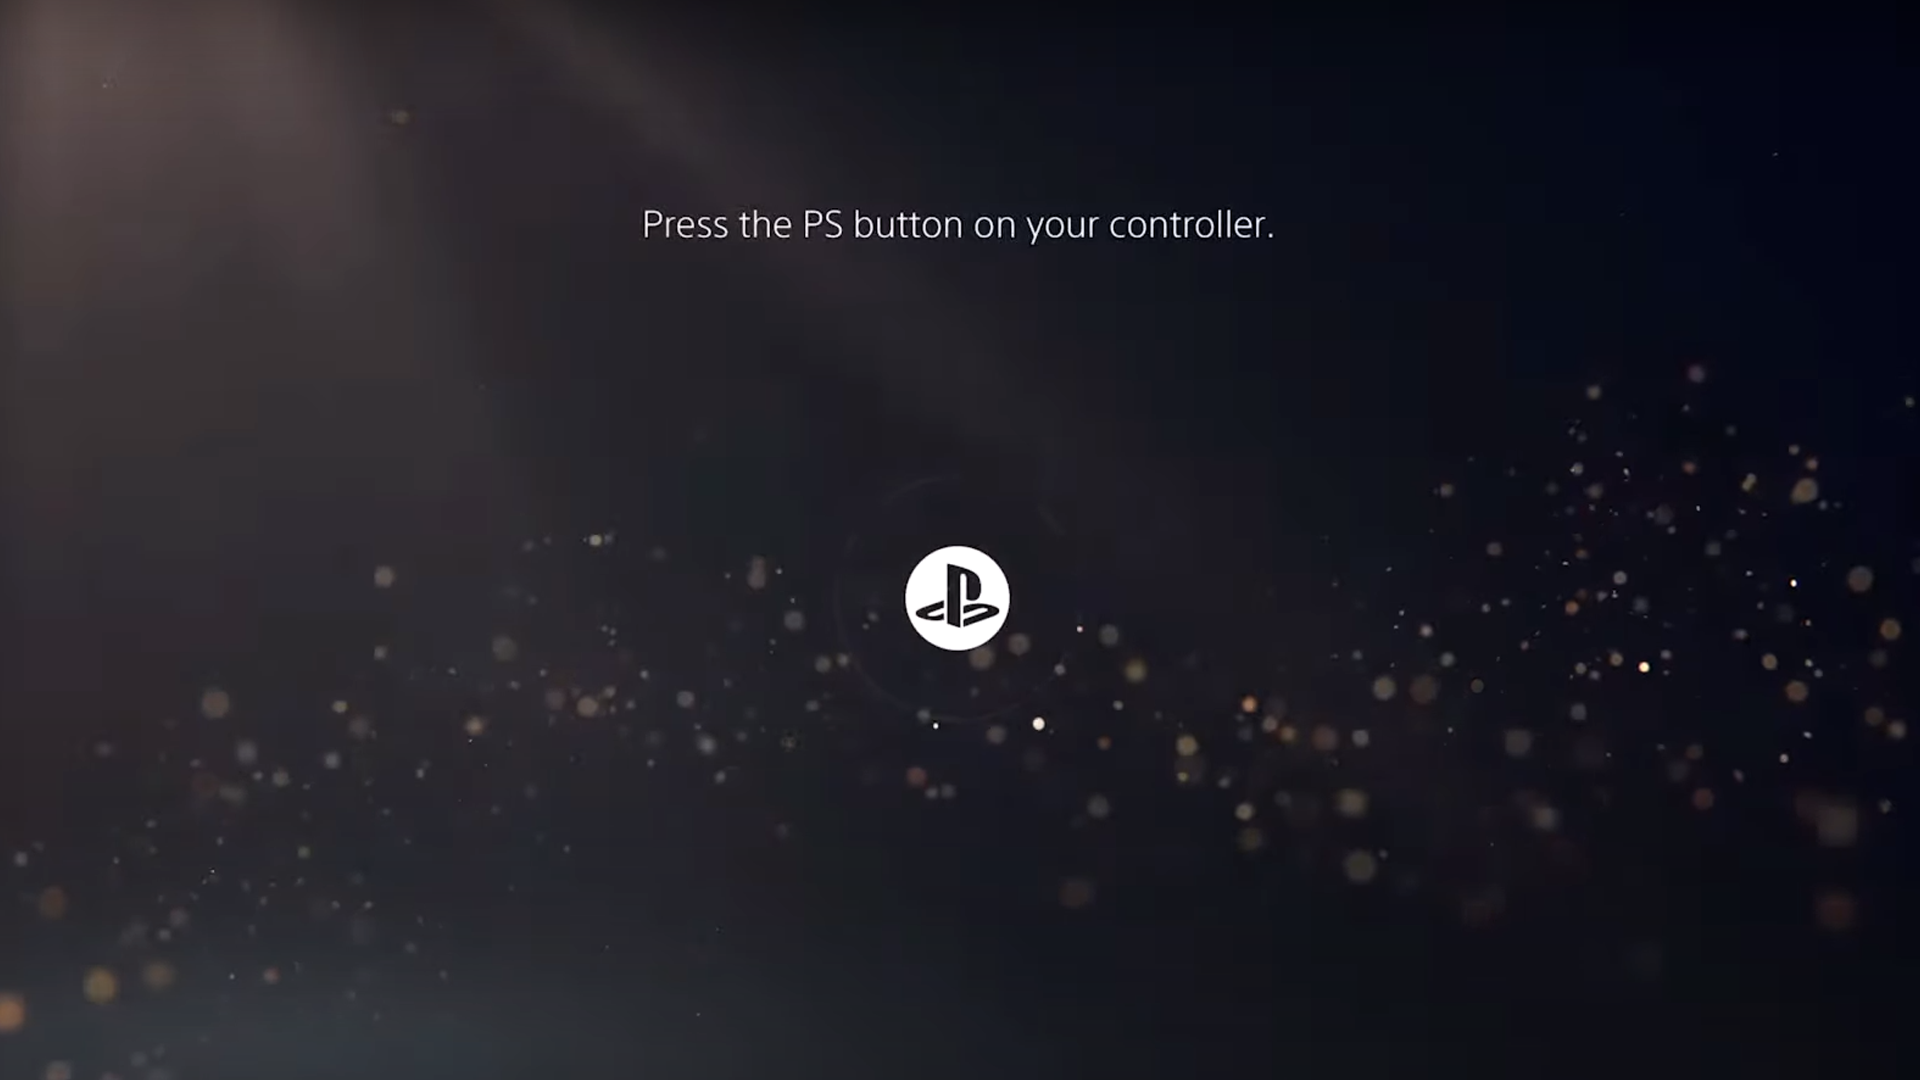 Rumor: PS5 UI May Be Shown Soon to Avoid Leaks From PS5 Dev Kit 'Retail Mode' Update